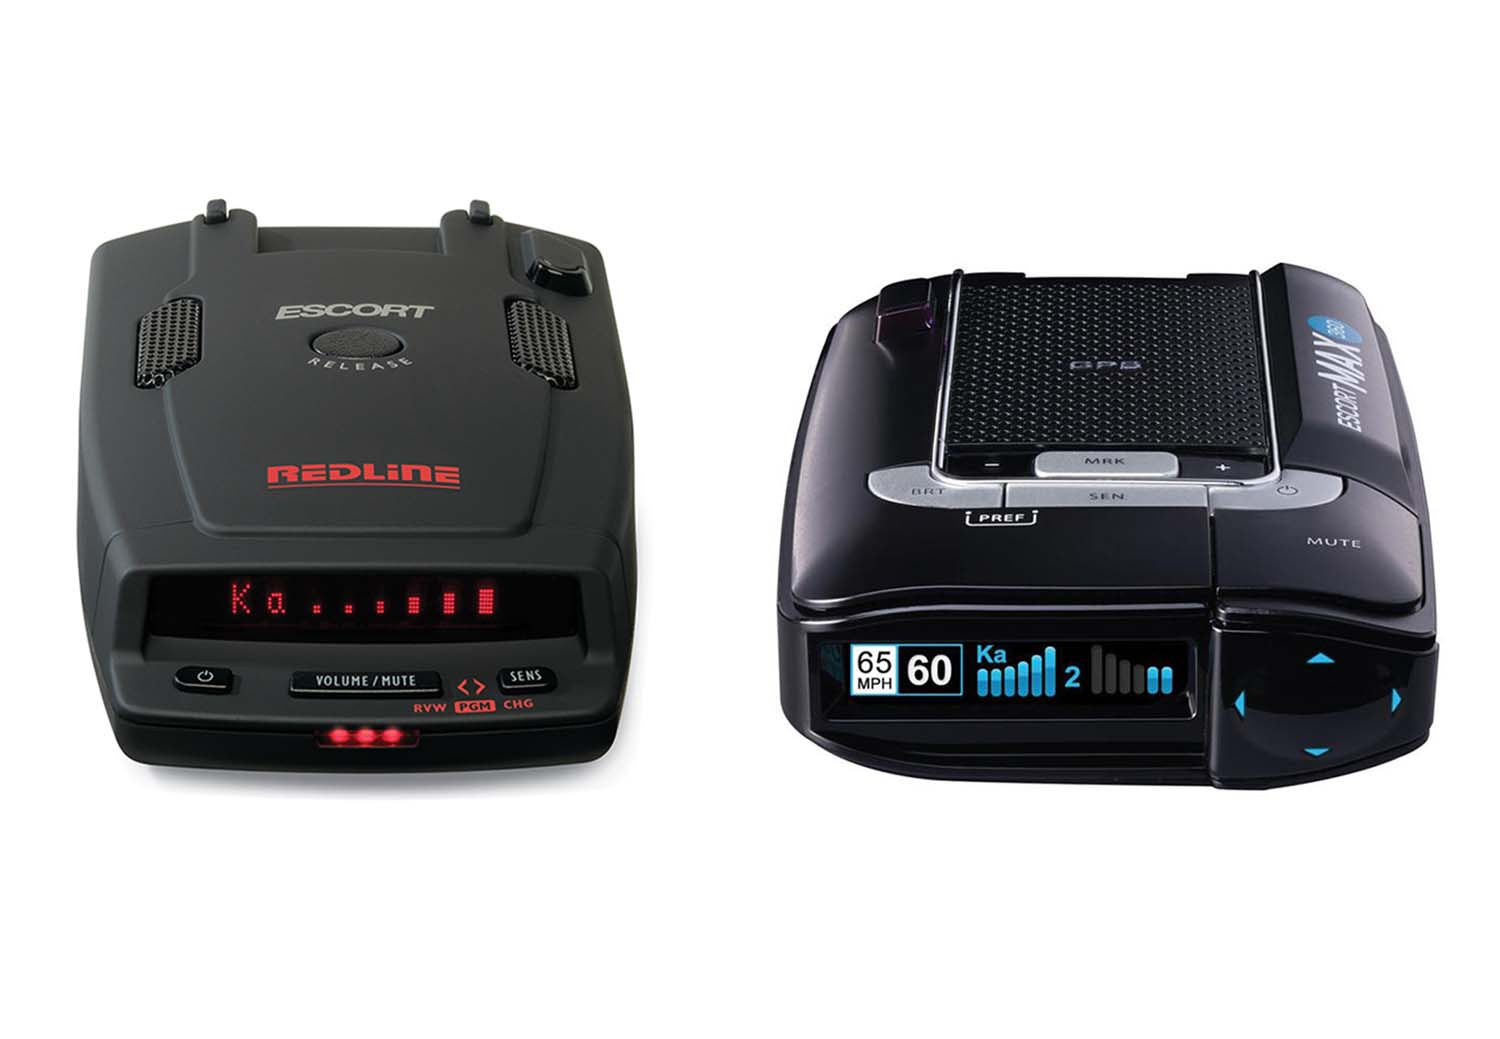 Best Radar Detector: Escort Redline XR protects against speeding tickets